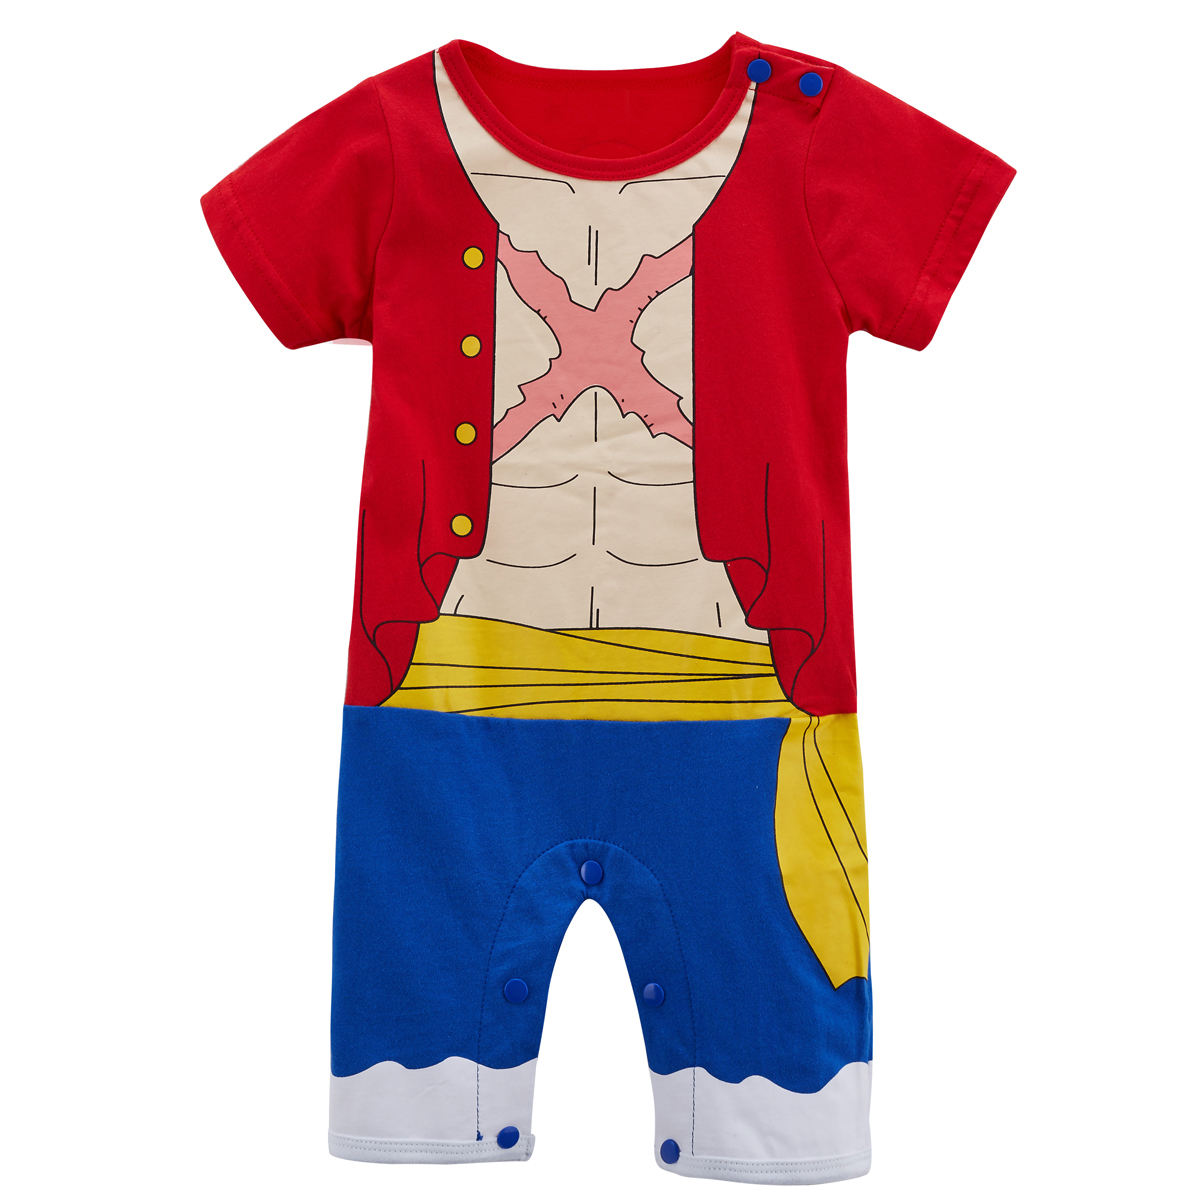 Baby Boys Luffy Roronoa Zoro   Romper   Infant Halloween Fancy Dress Party Jumpsuit Newborn Anime Cosplay Cartoon Playsuit Costume